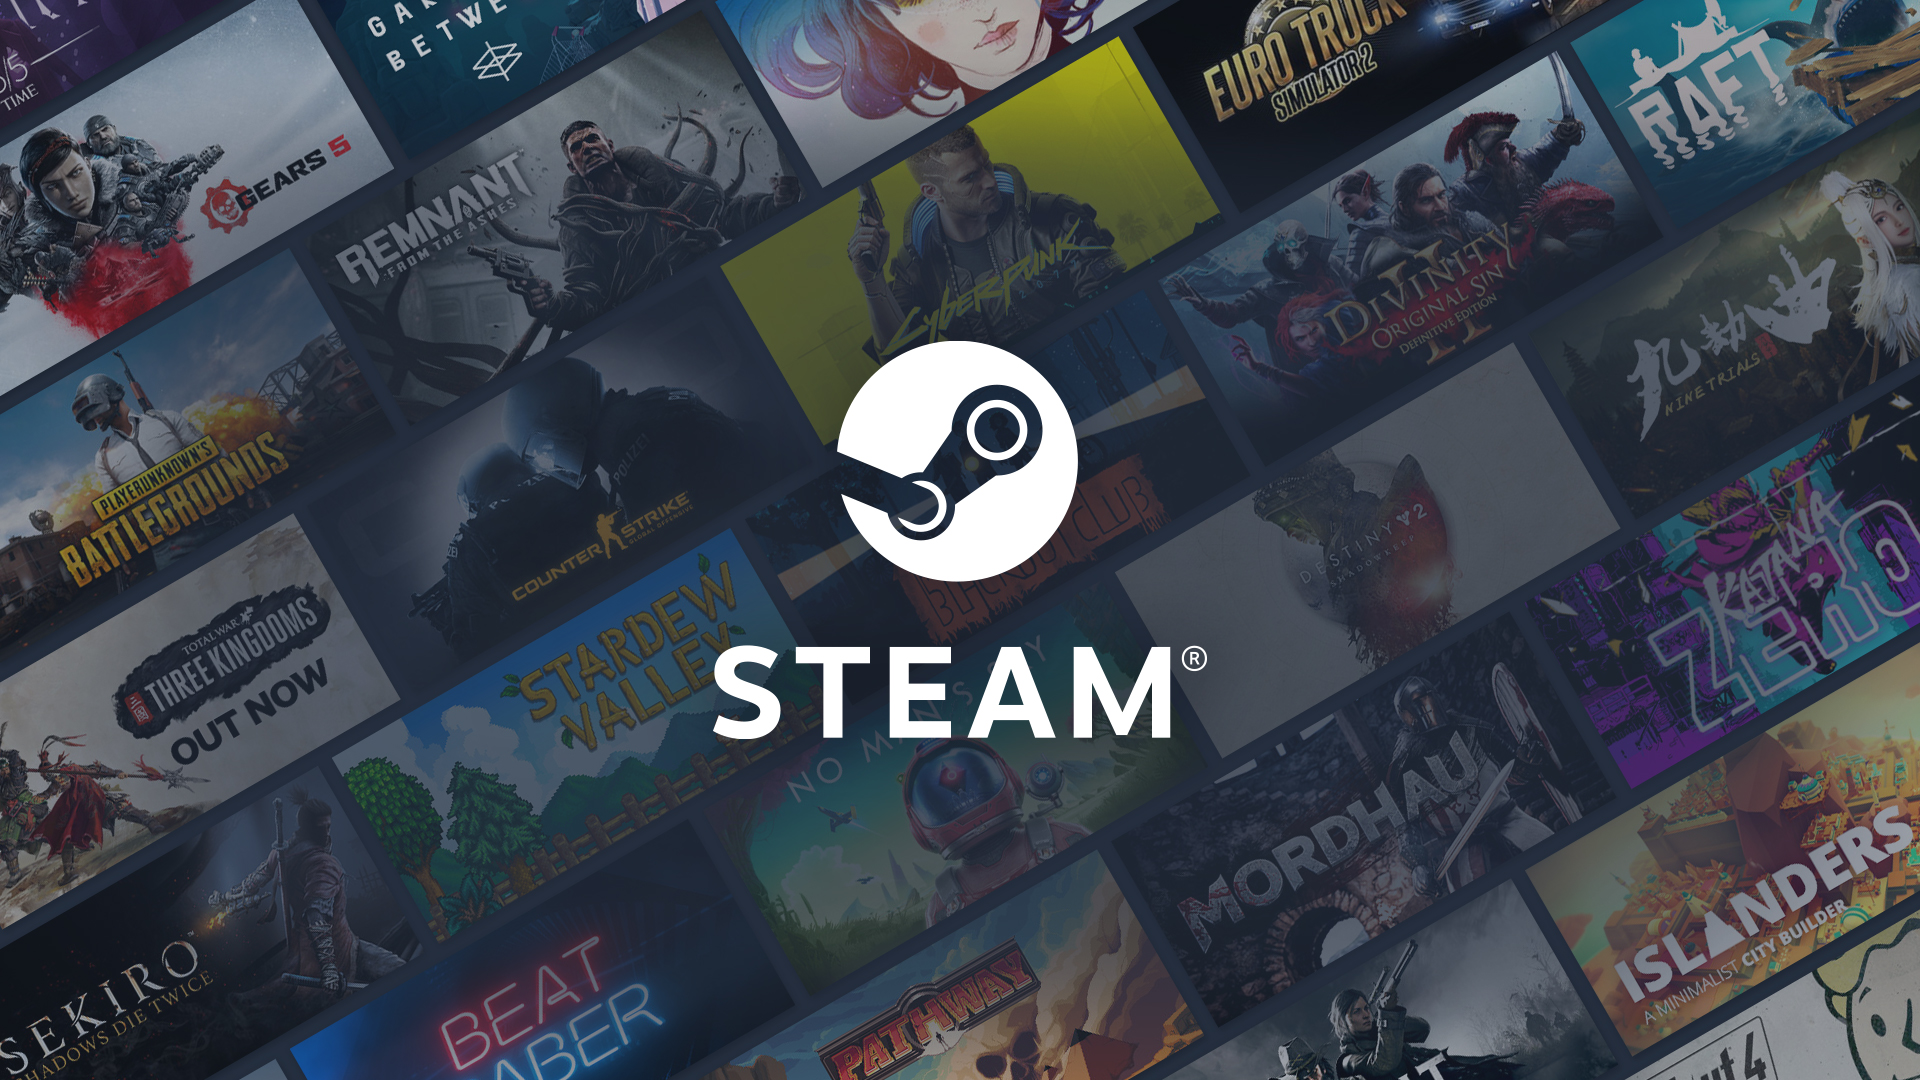 Valve-may-be-integrating-beta-test-signups-into-Steam-directly-2.jpg